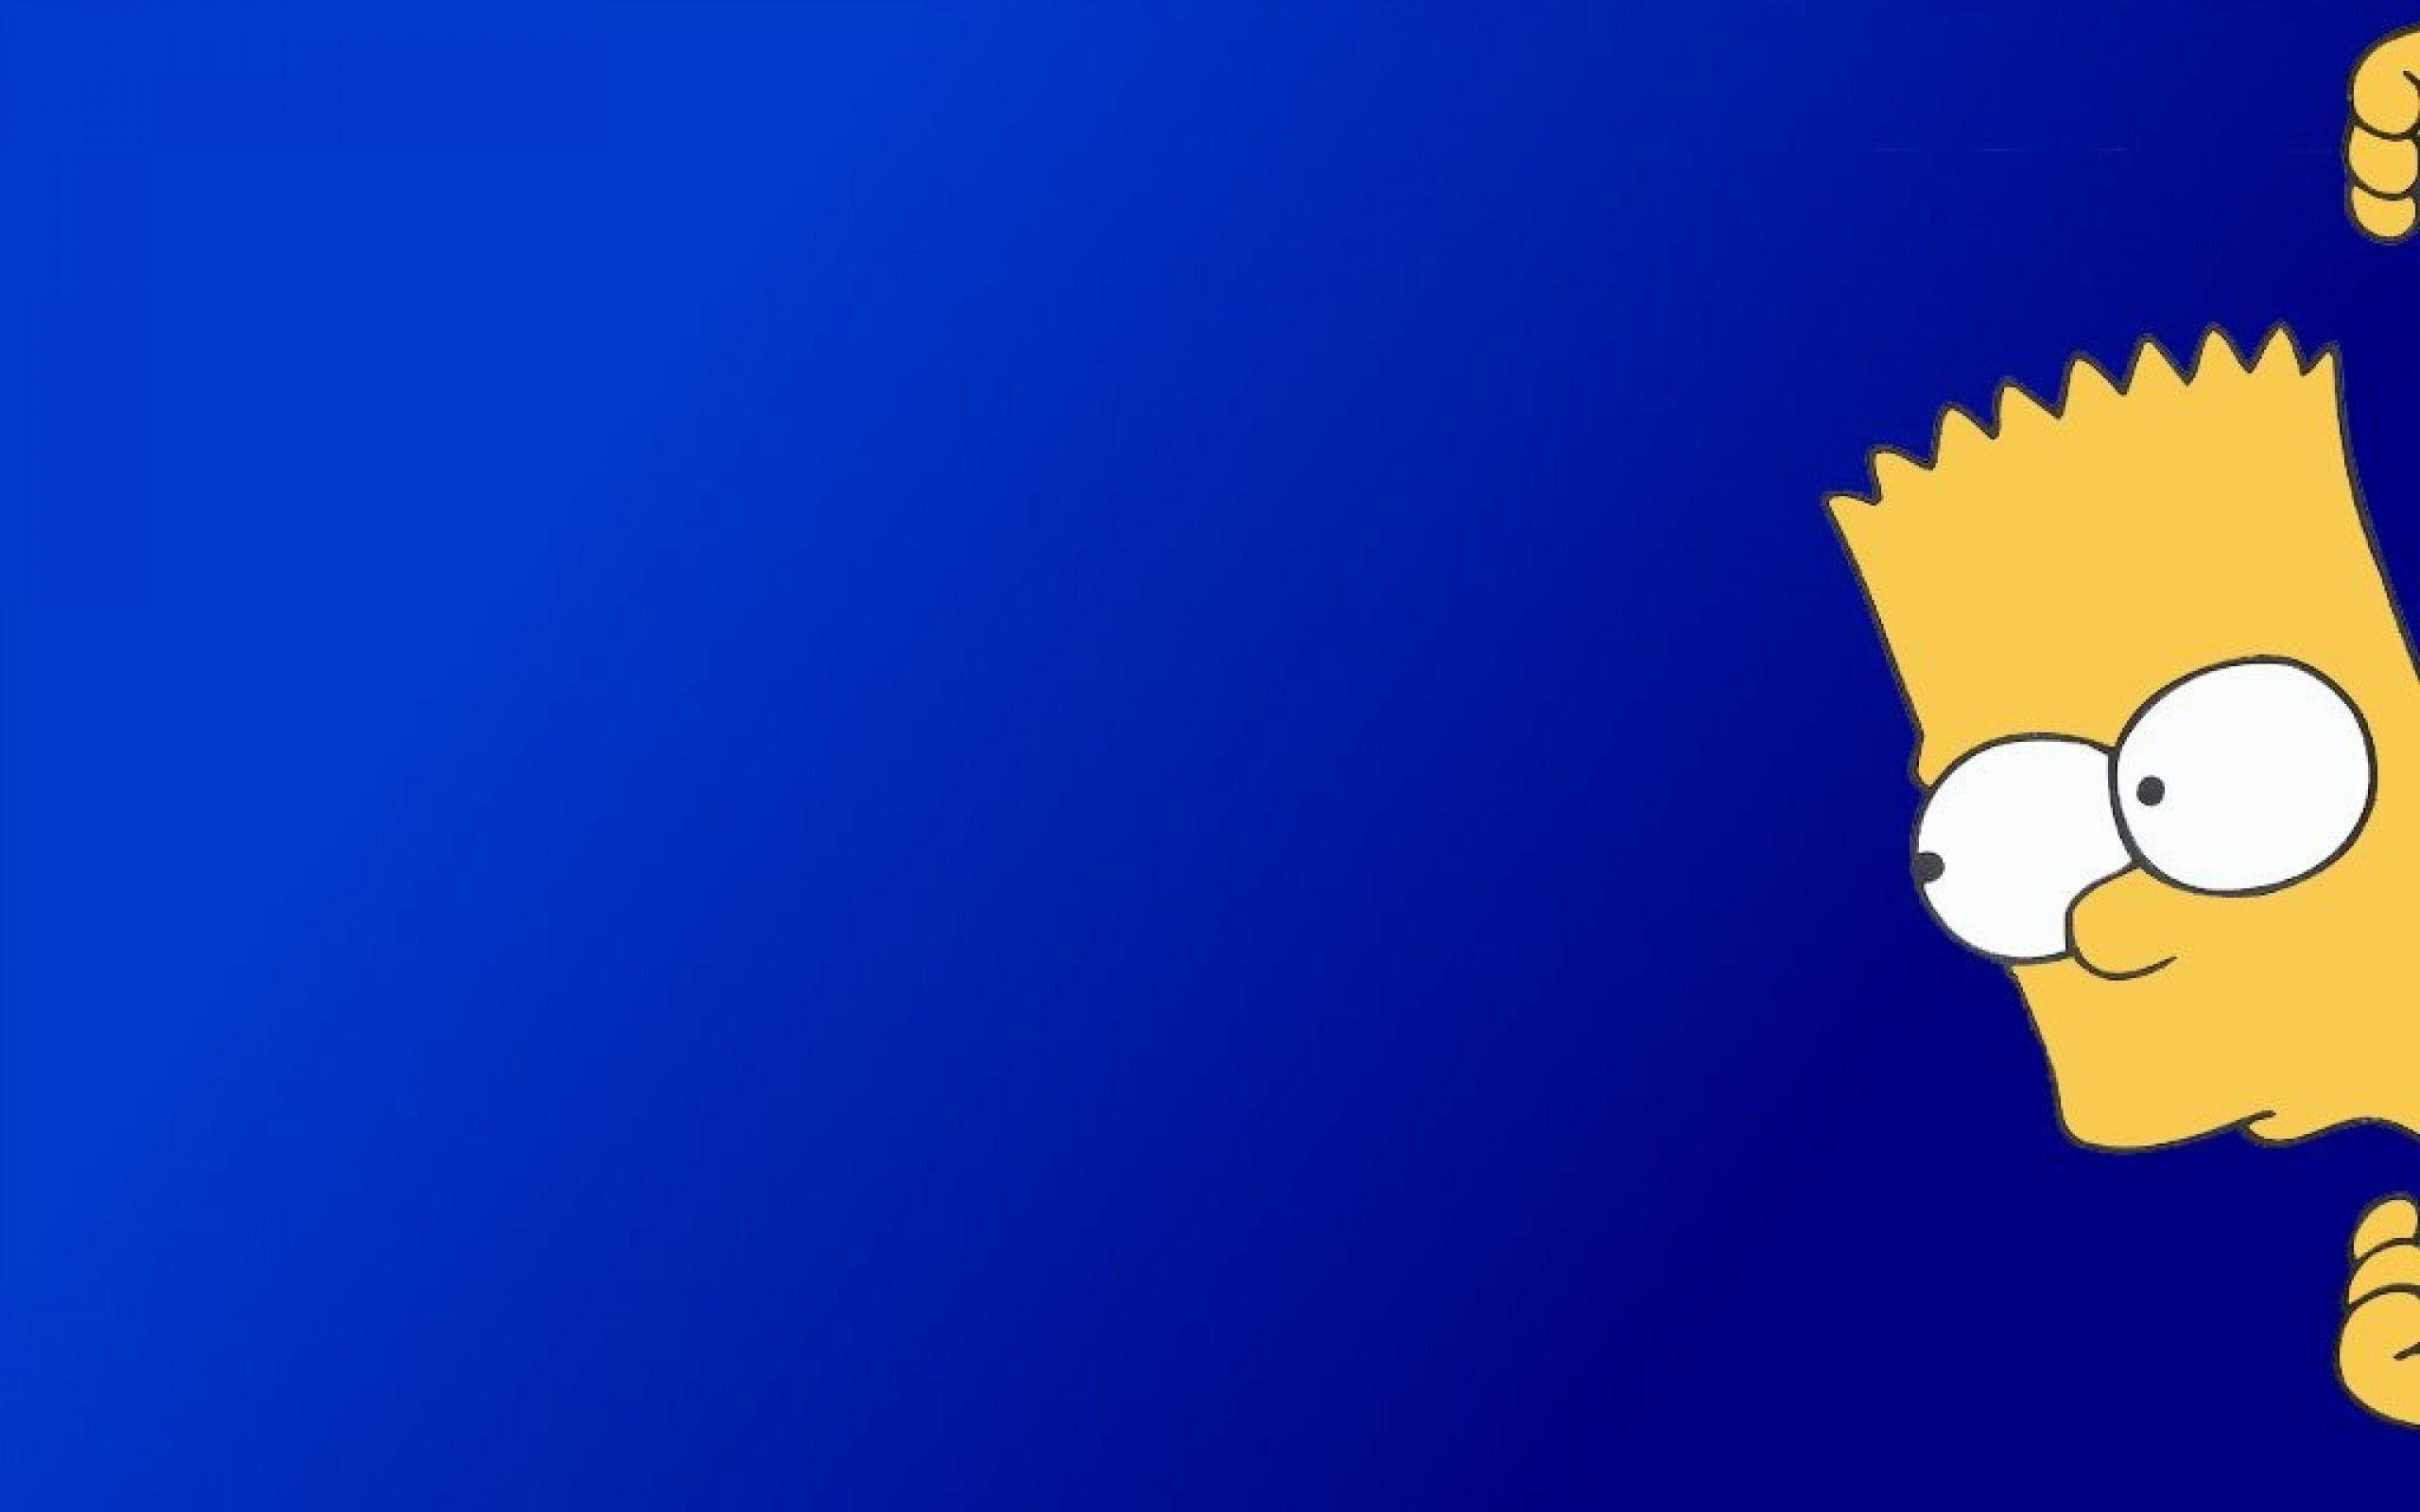 The Simpsons Wallpapers HD [2560x1600 ...